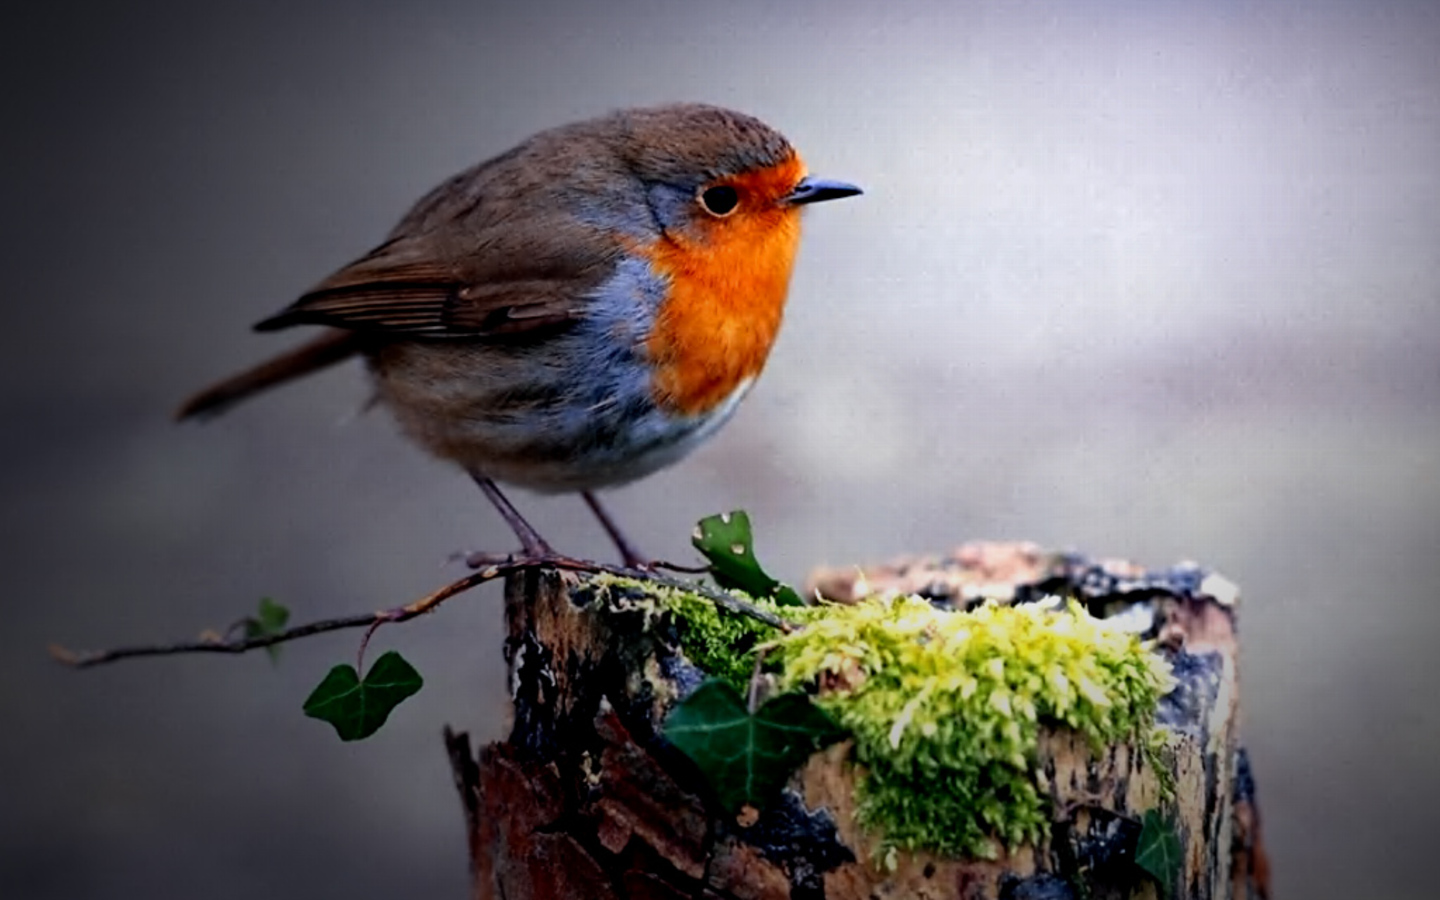 Bird Wallpaper Fascinating Bird Wallpaper  Wallpapersafari Design Inspiration